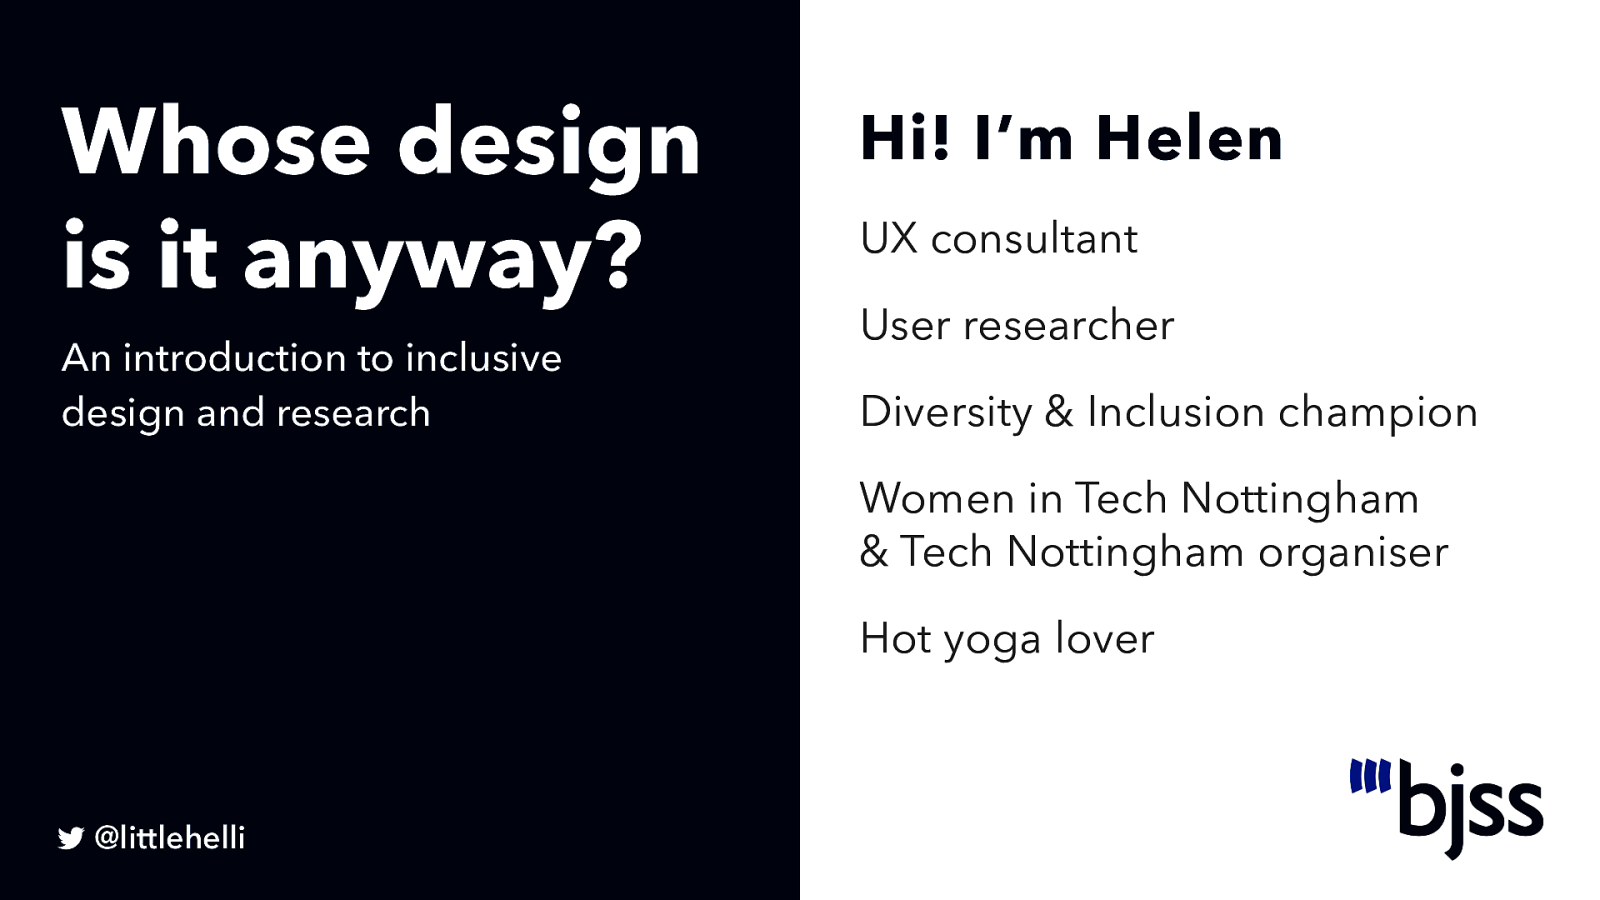 Talk: Whose Design is it Anyway? - In introduction to inclusive design and research